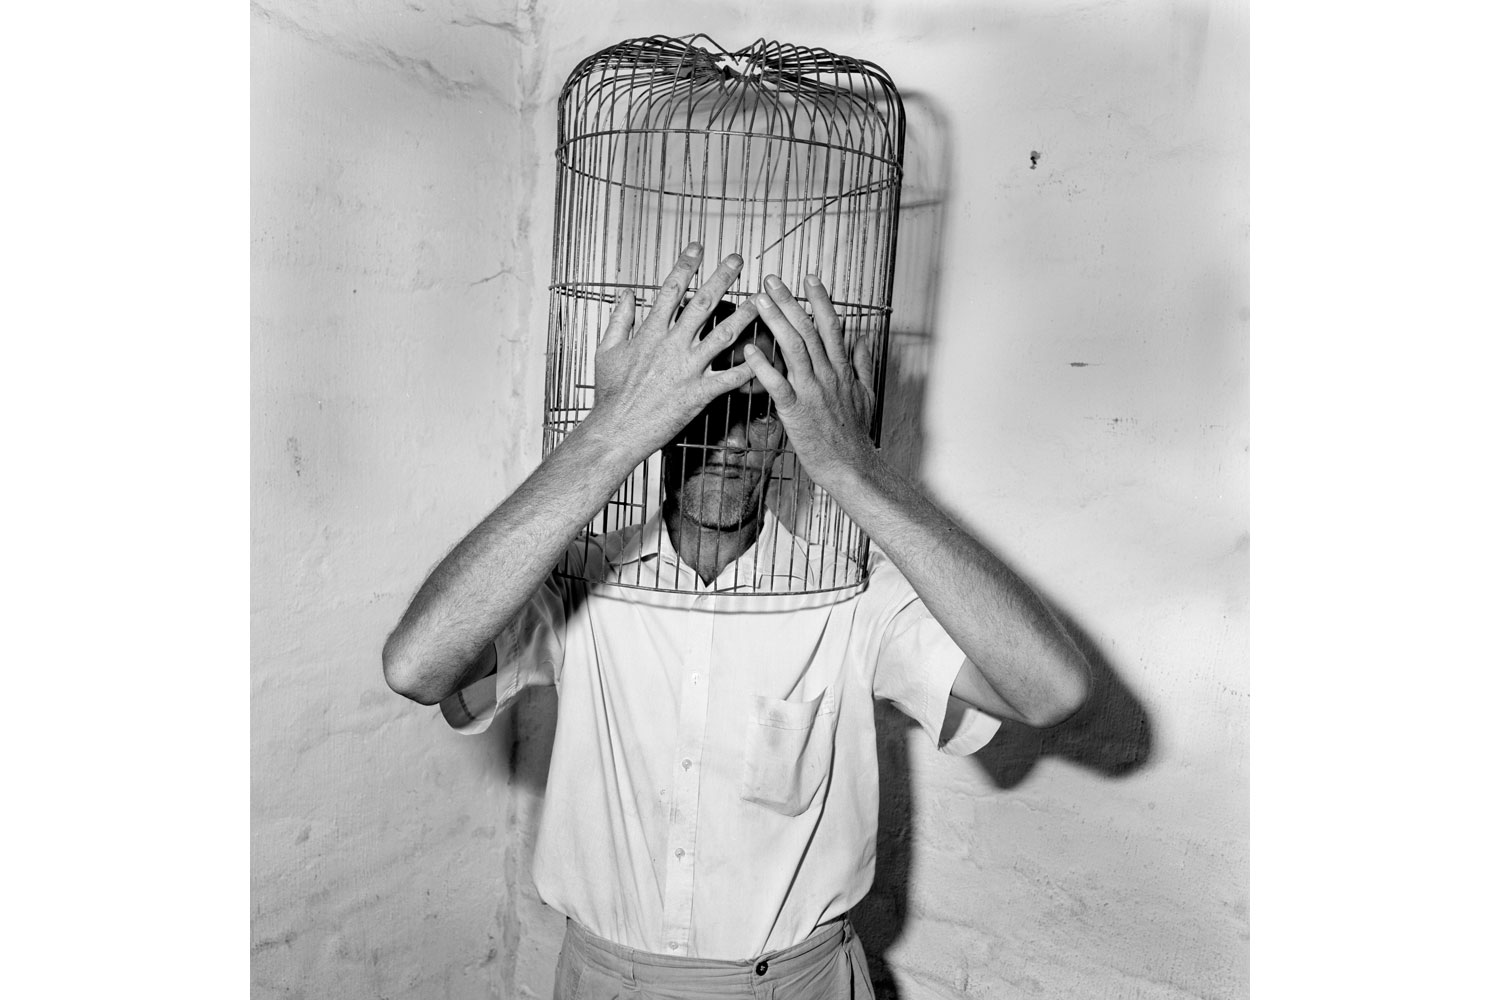 'Encaged,' from Roger Ballen's Asylum of the Birds, published by Thames & Hudson